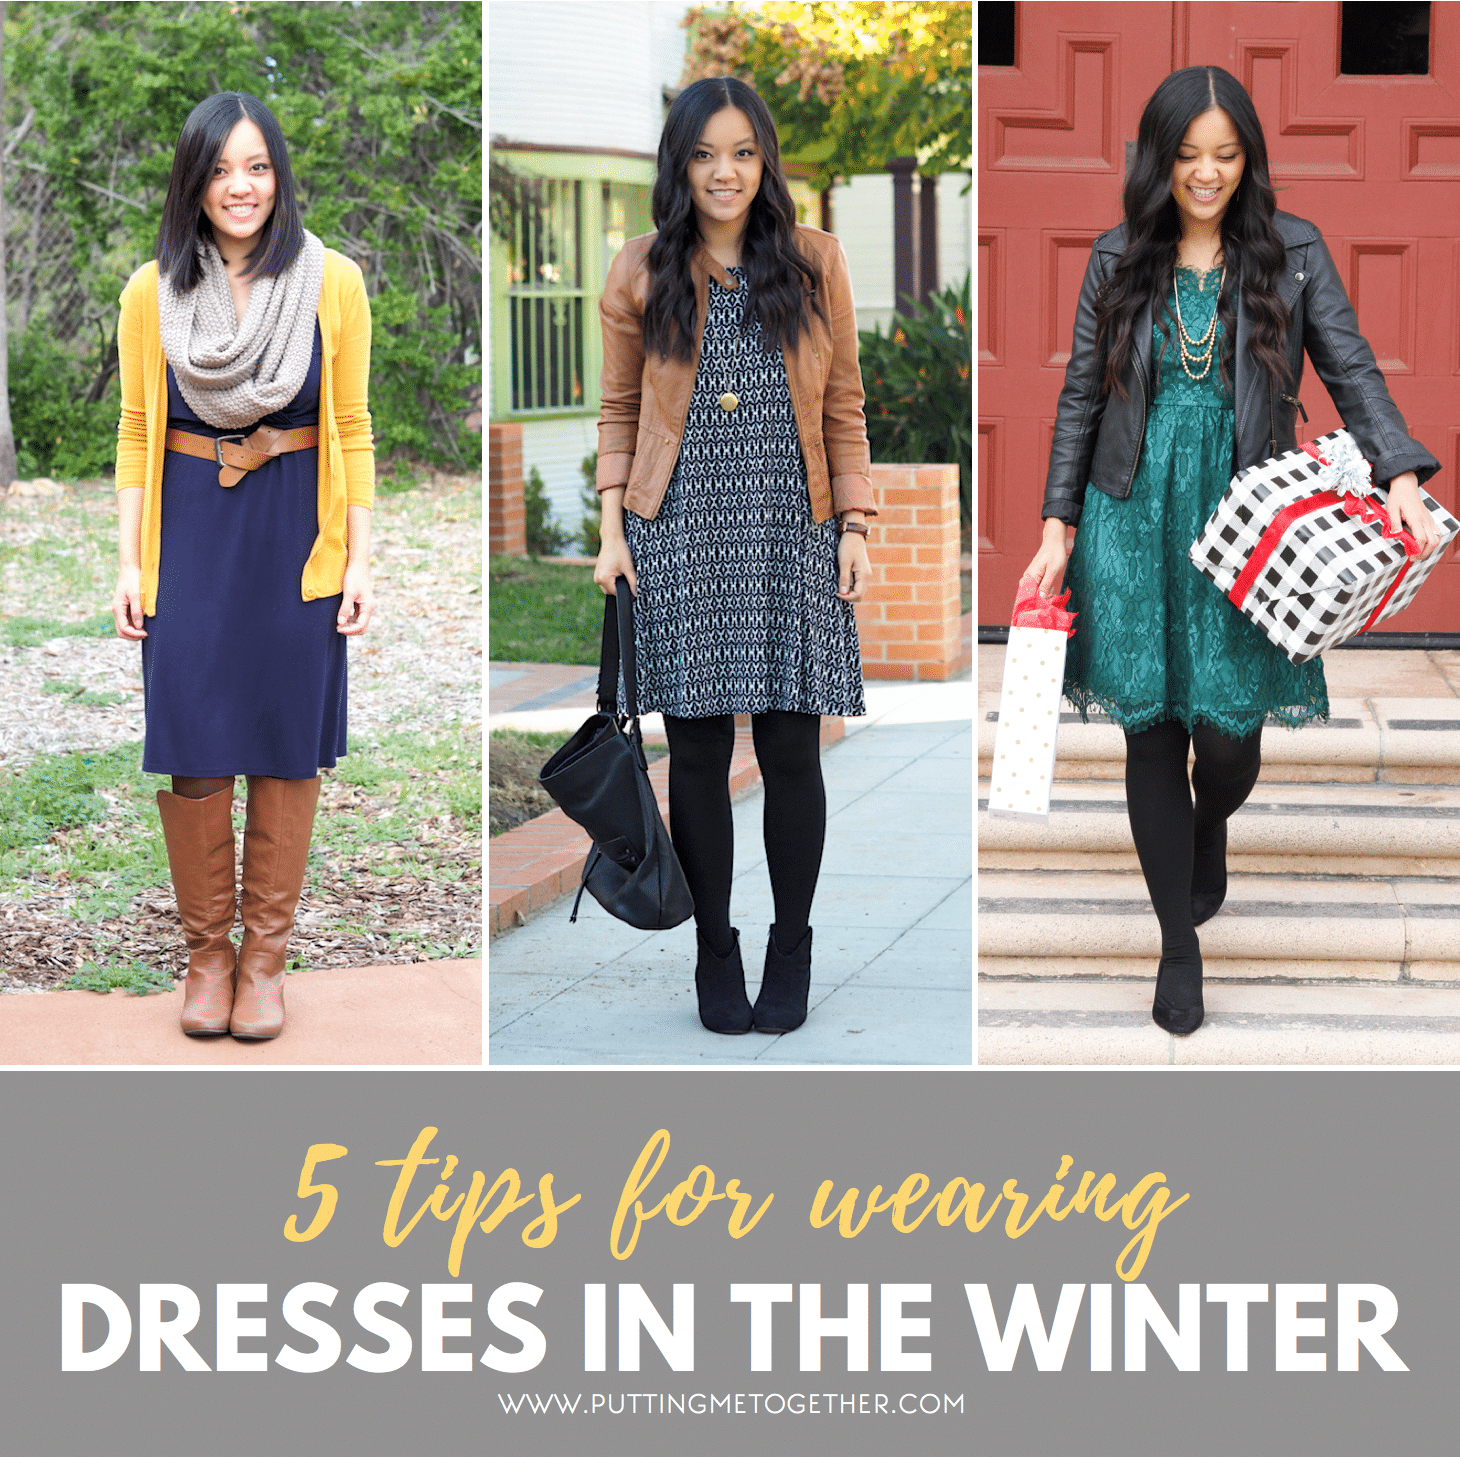 How to wear a dress in winter